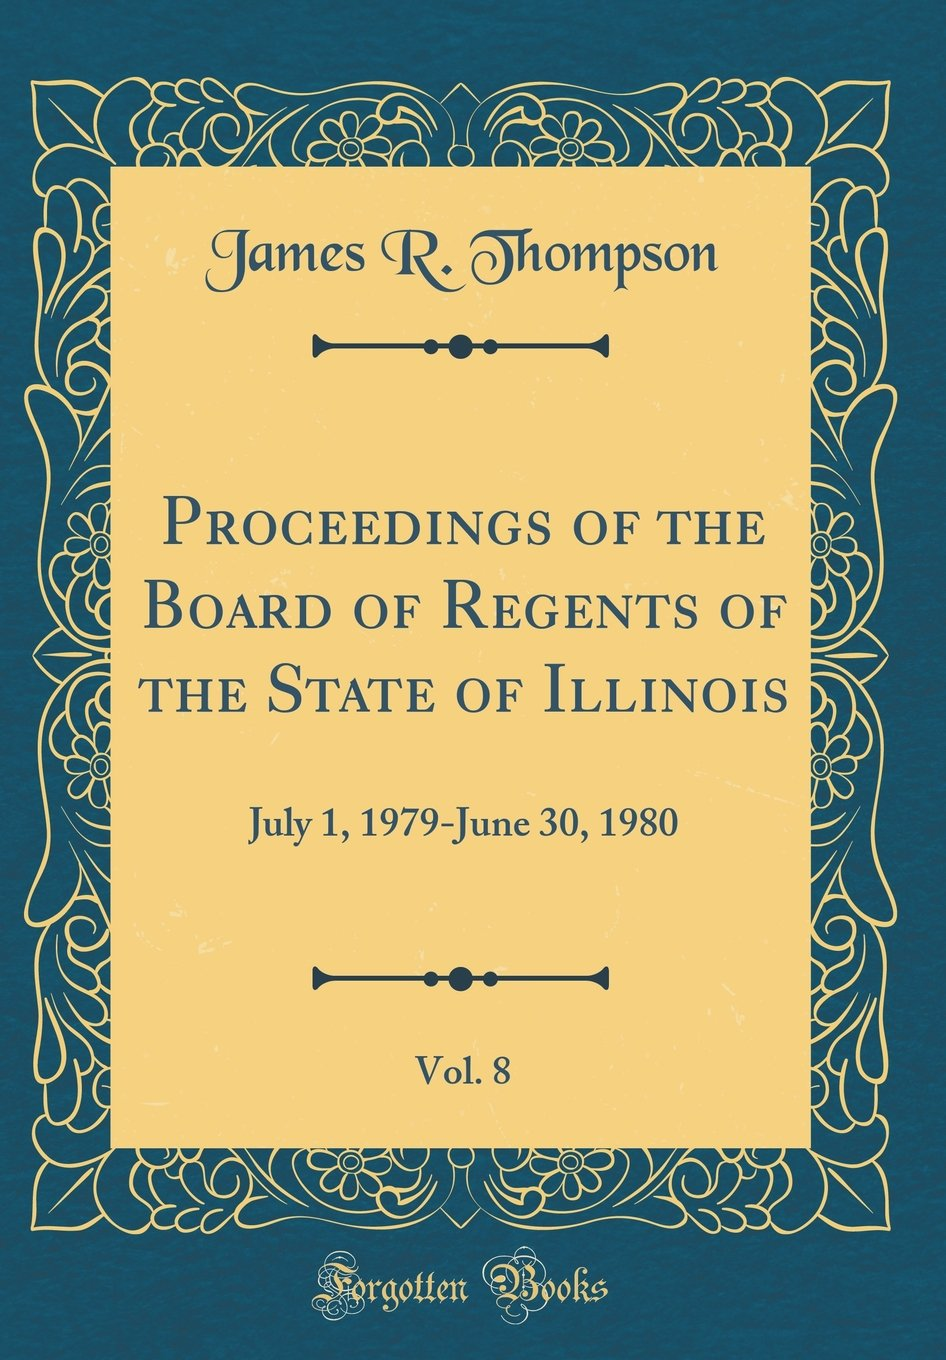 Proceedings of the Board of Regents of the State of Illinois, Vol. 8: July 1, 1979-June 30, 1980 (Classic Reprint) PDF